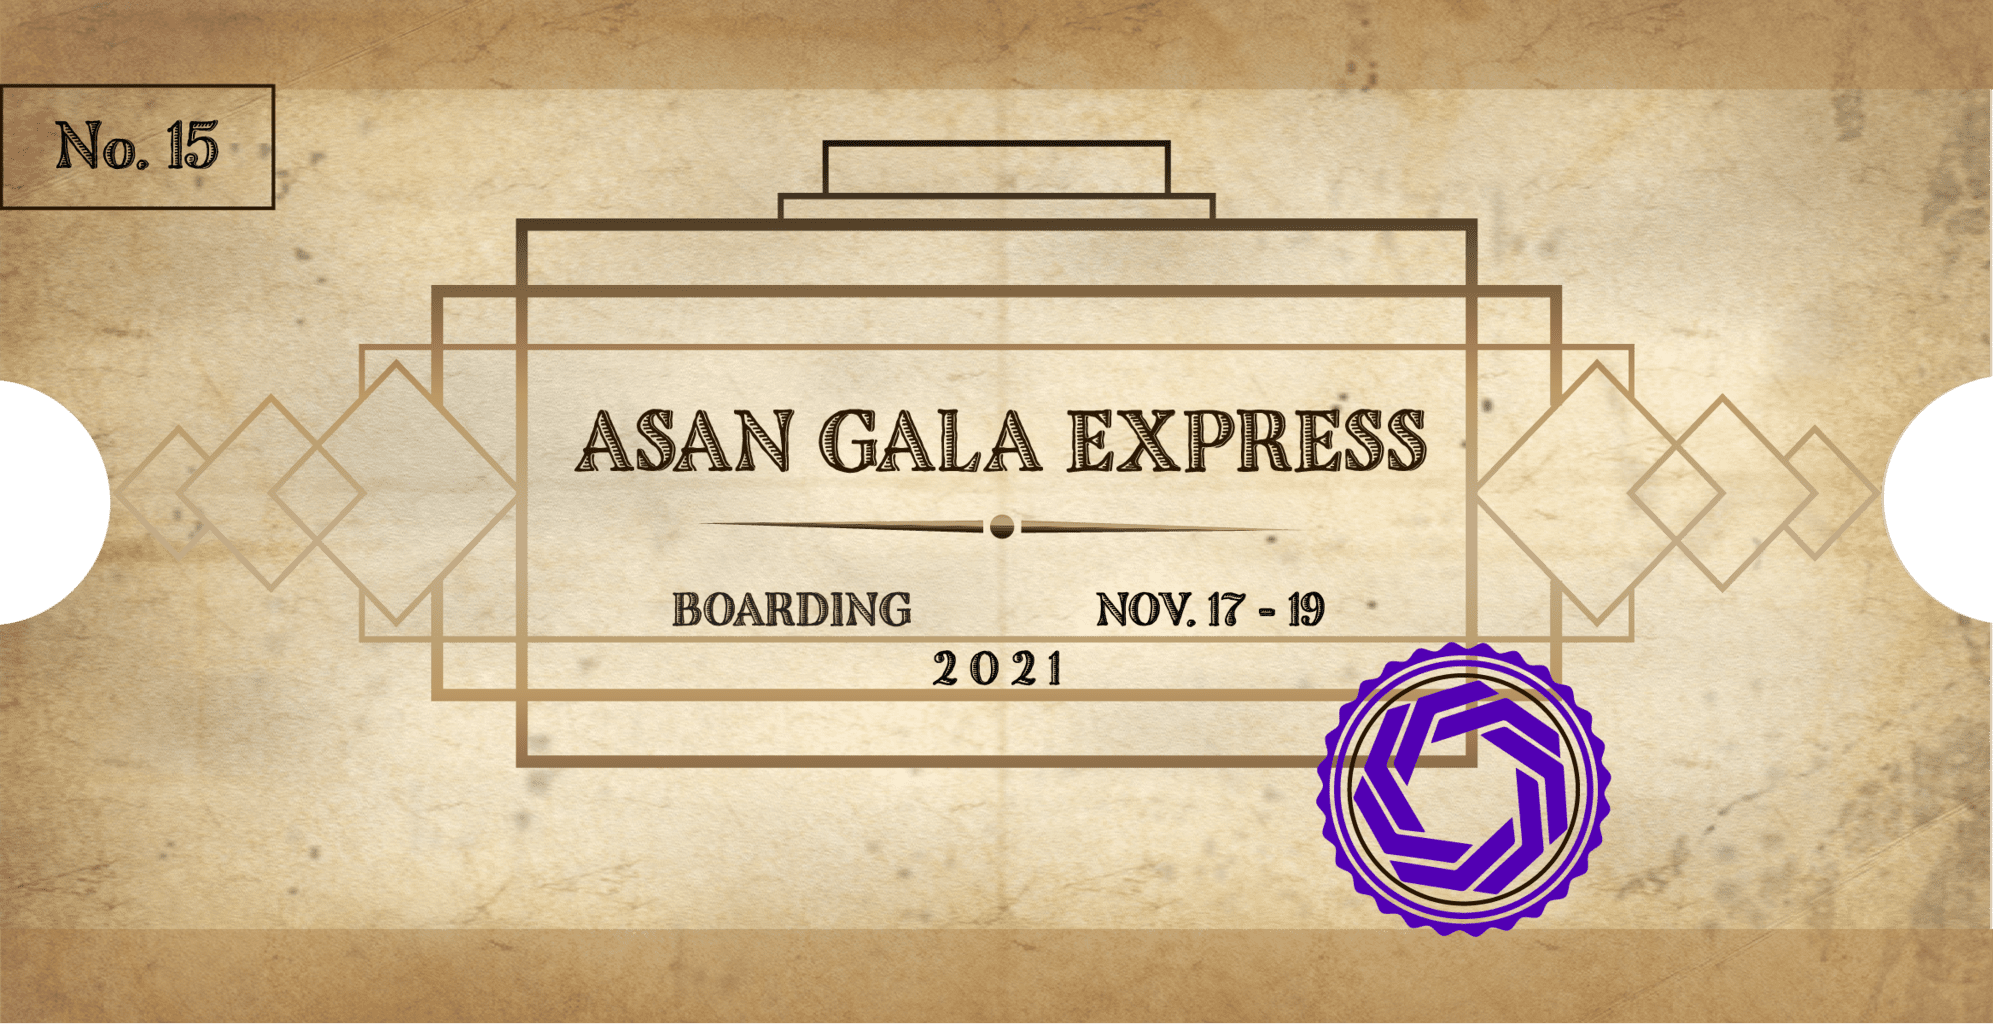 """On a background of weathered parchment paper cut like a ticket is a series of ornate interlocking boxes. In the middle, text reads """"ASAN Gala Express."""" Underneath is """"Boarding Nov. 17-19 2021."""" The ticket is stamped with a purple stamp made of the ASAN logo. In the top right corner is 'No. 15."""""""